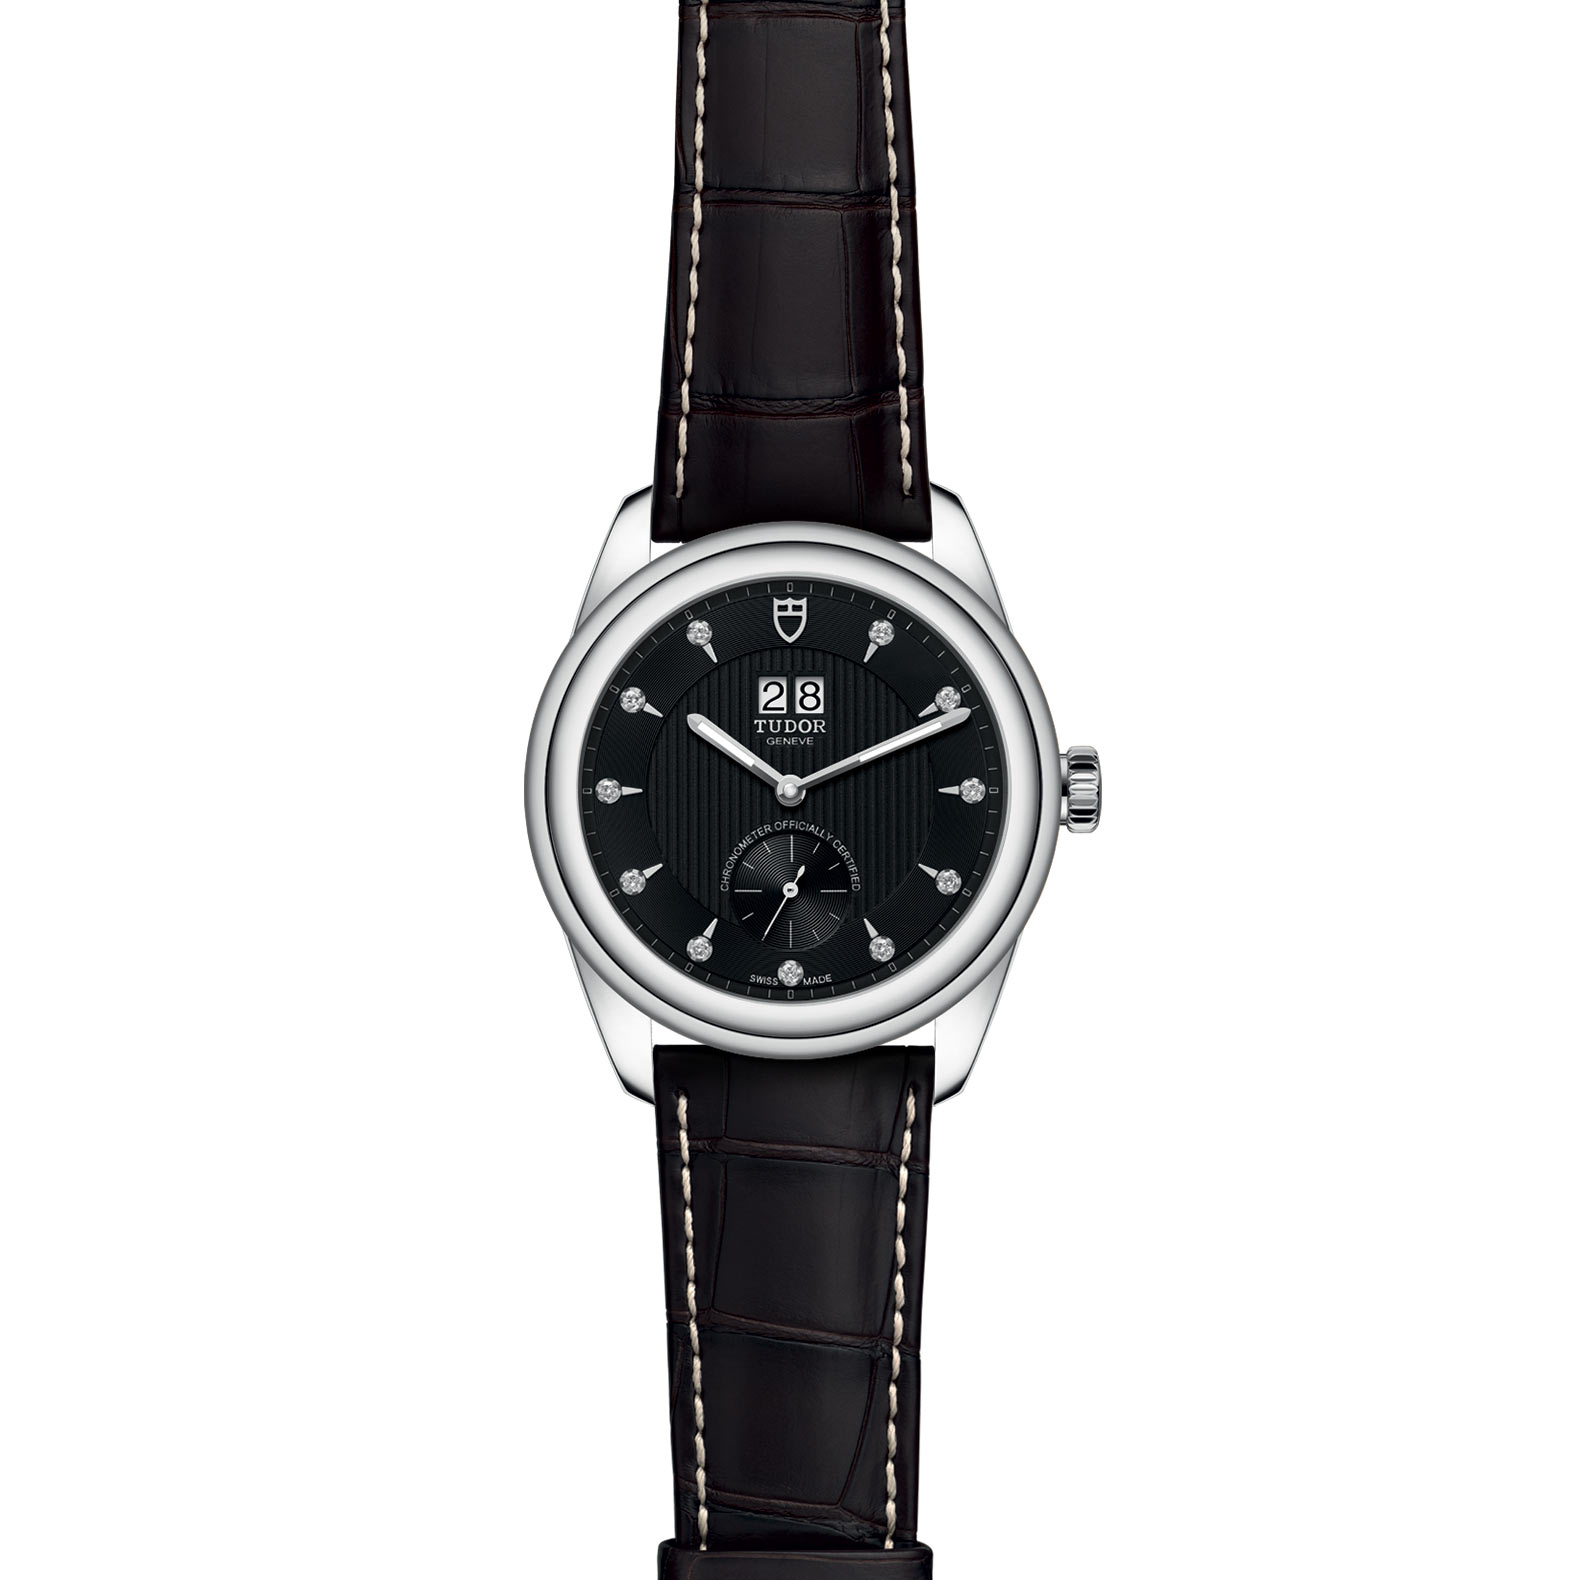 TUDOR Glamour Double Date M57100 0019 Frontfacing